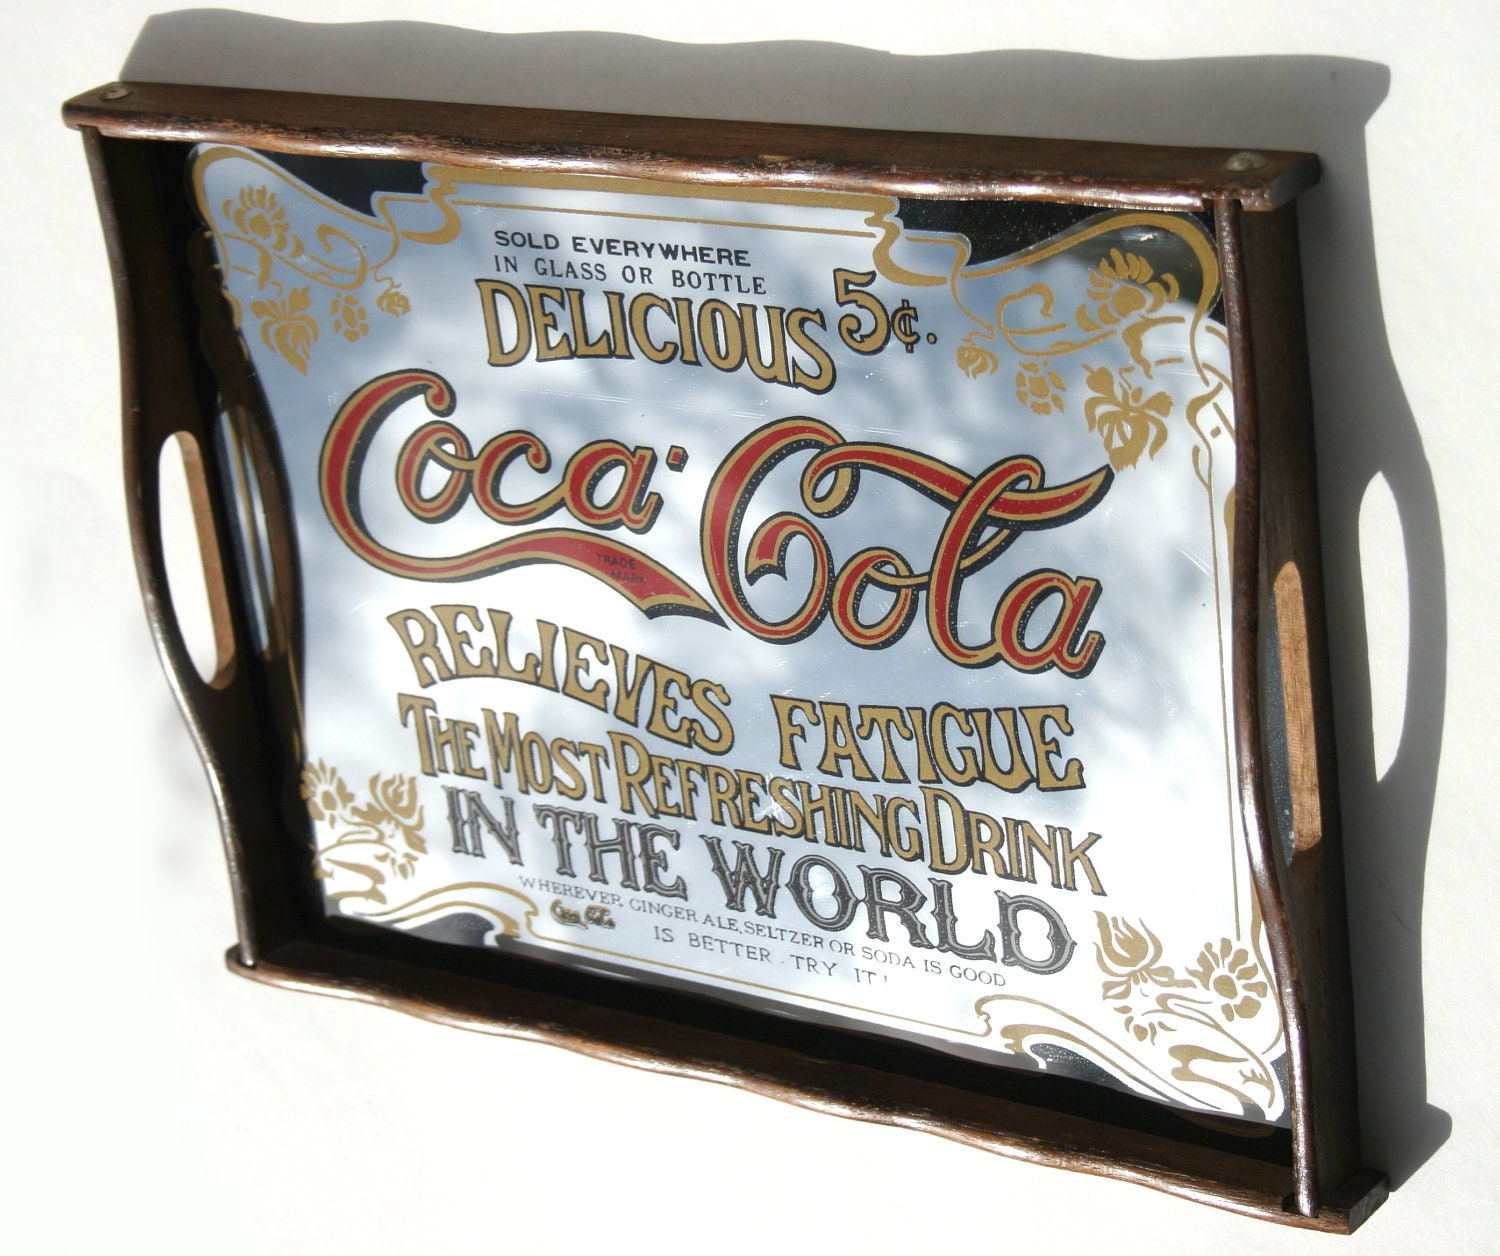 60 Coca Cola Mirror Serving Tray With Wood Handles Relieves